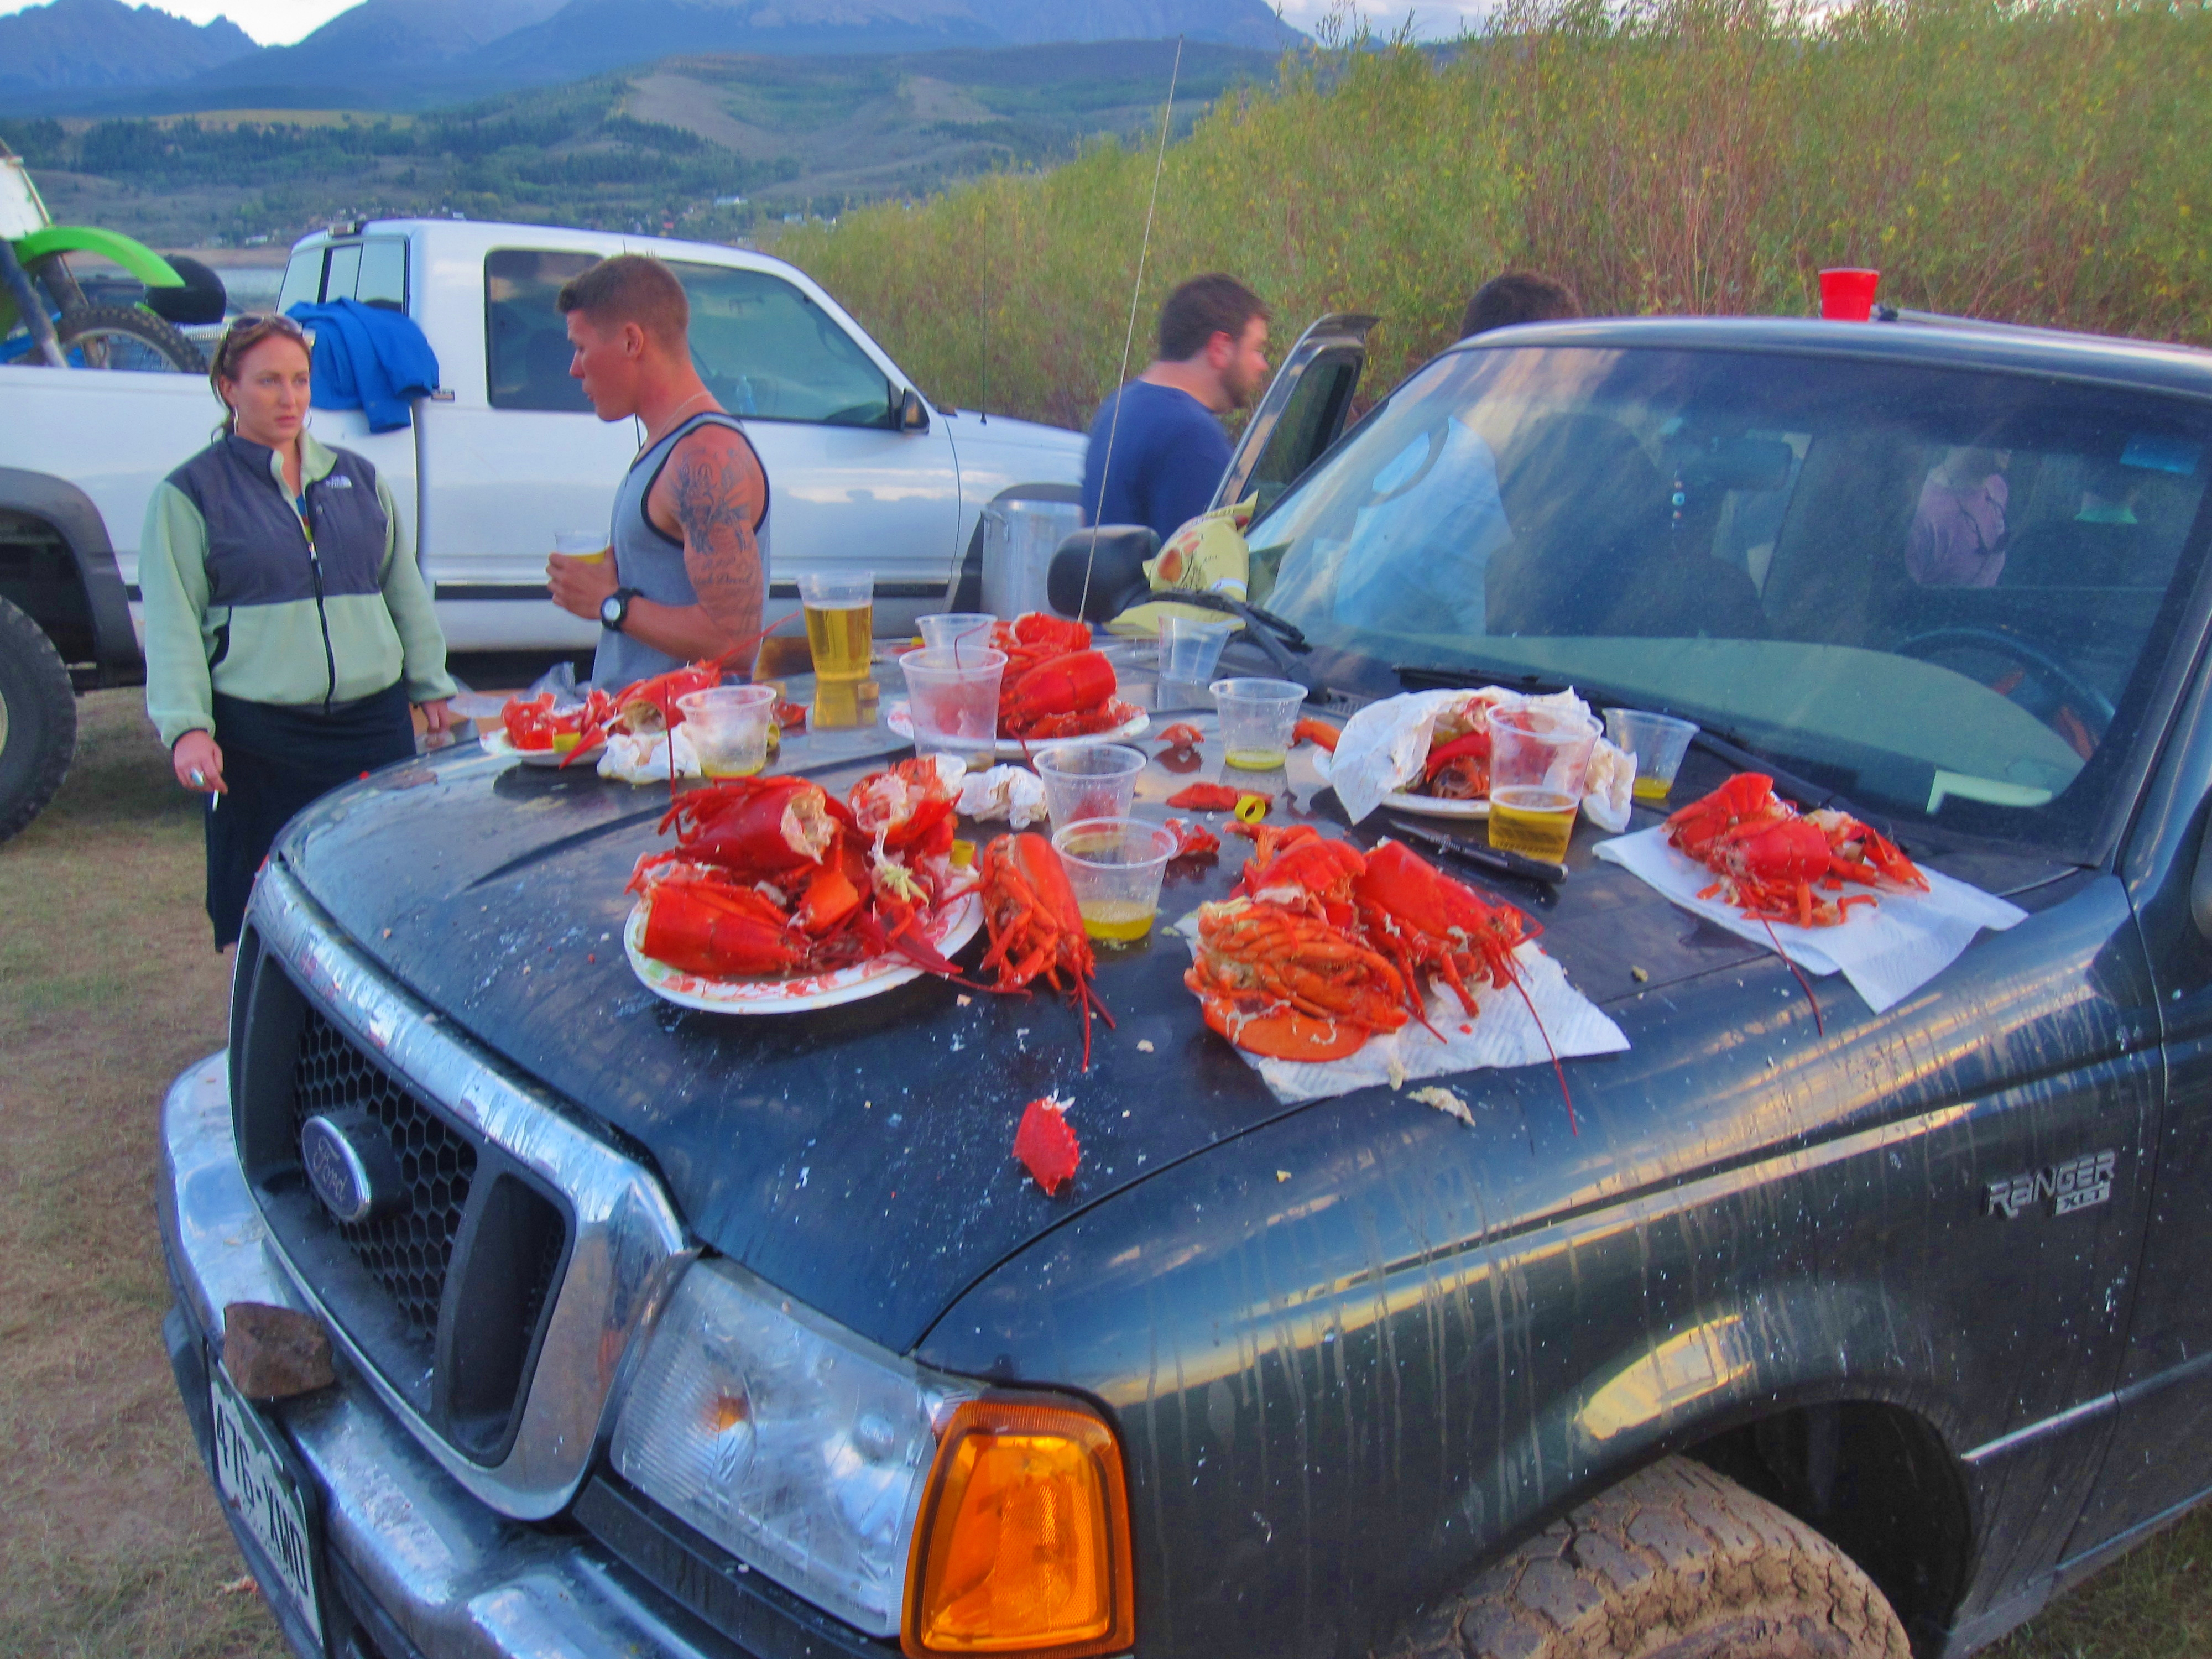 Rainbows, Lobsters Team Up at Green Mountain Reservoir | Wake and Wander